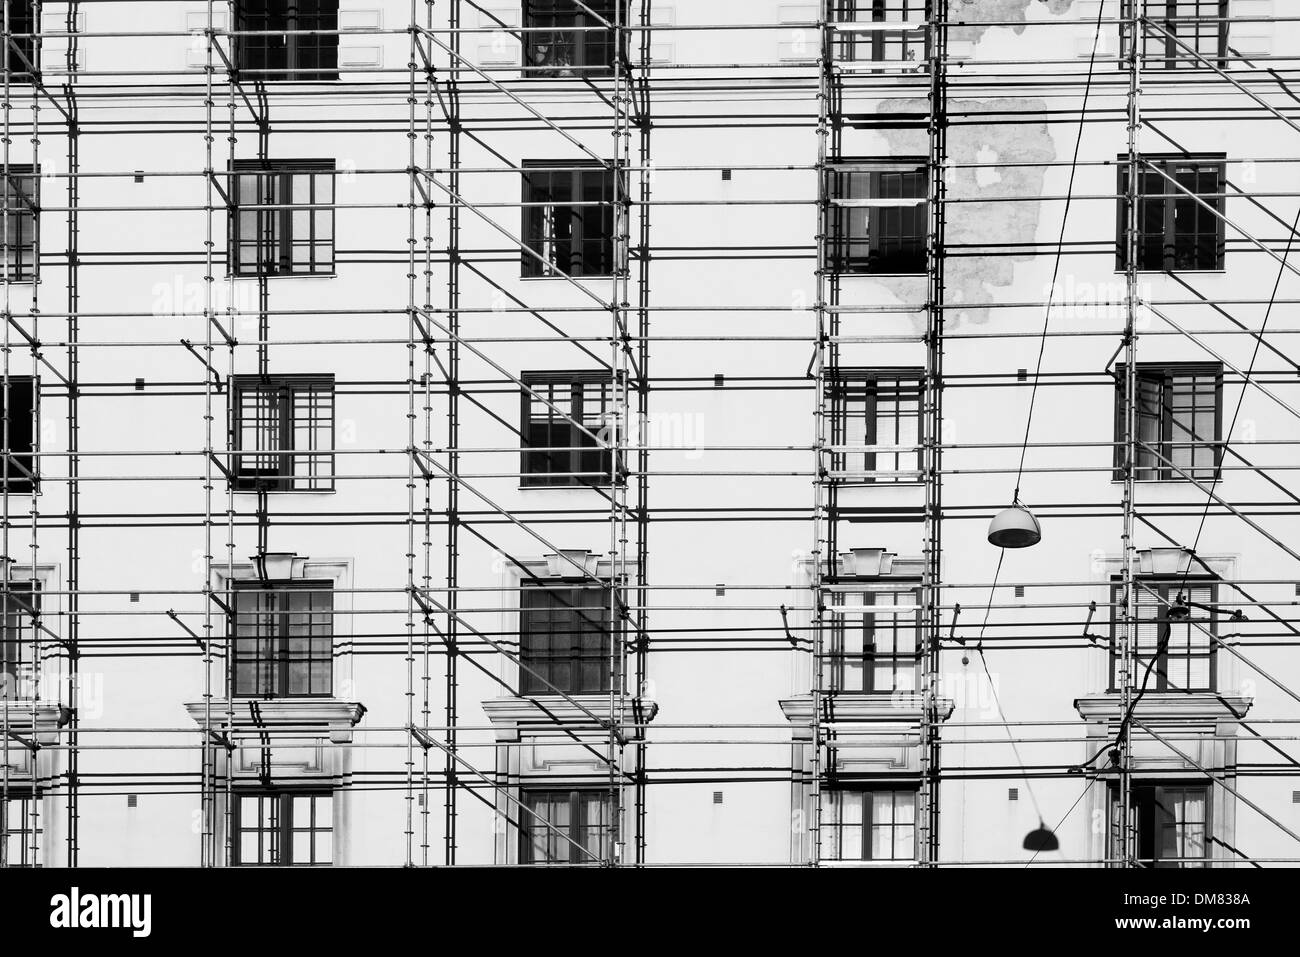 Scaffoldings on the side of an apartment building - Stock Image